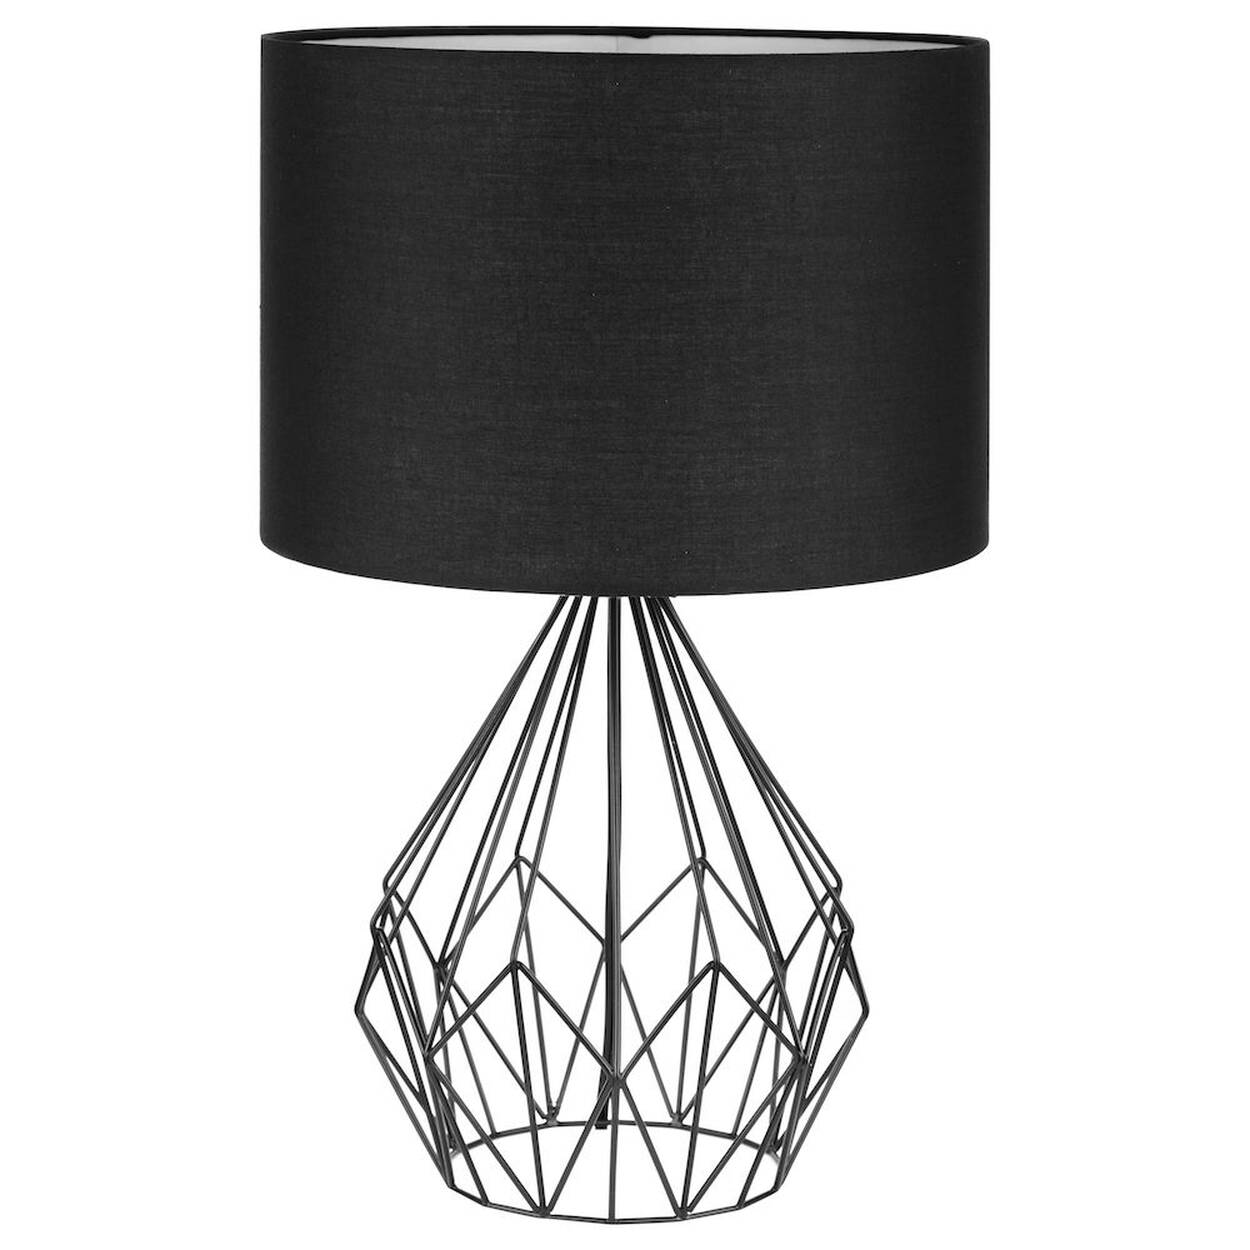 Swell Metal Wire Table Lamp Bouclair Com Geral Blikvitt Wiring Digital Resources Geralblikvittorg